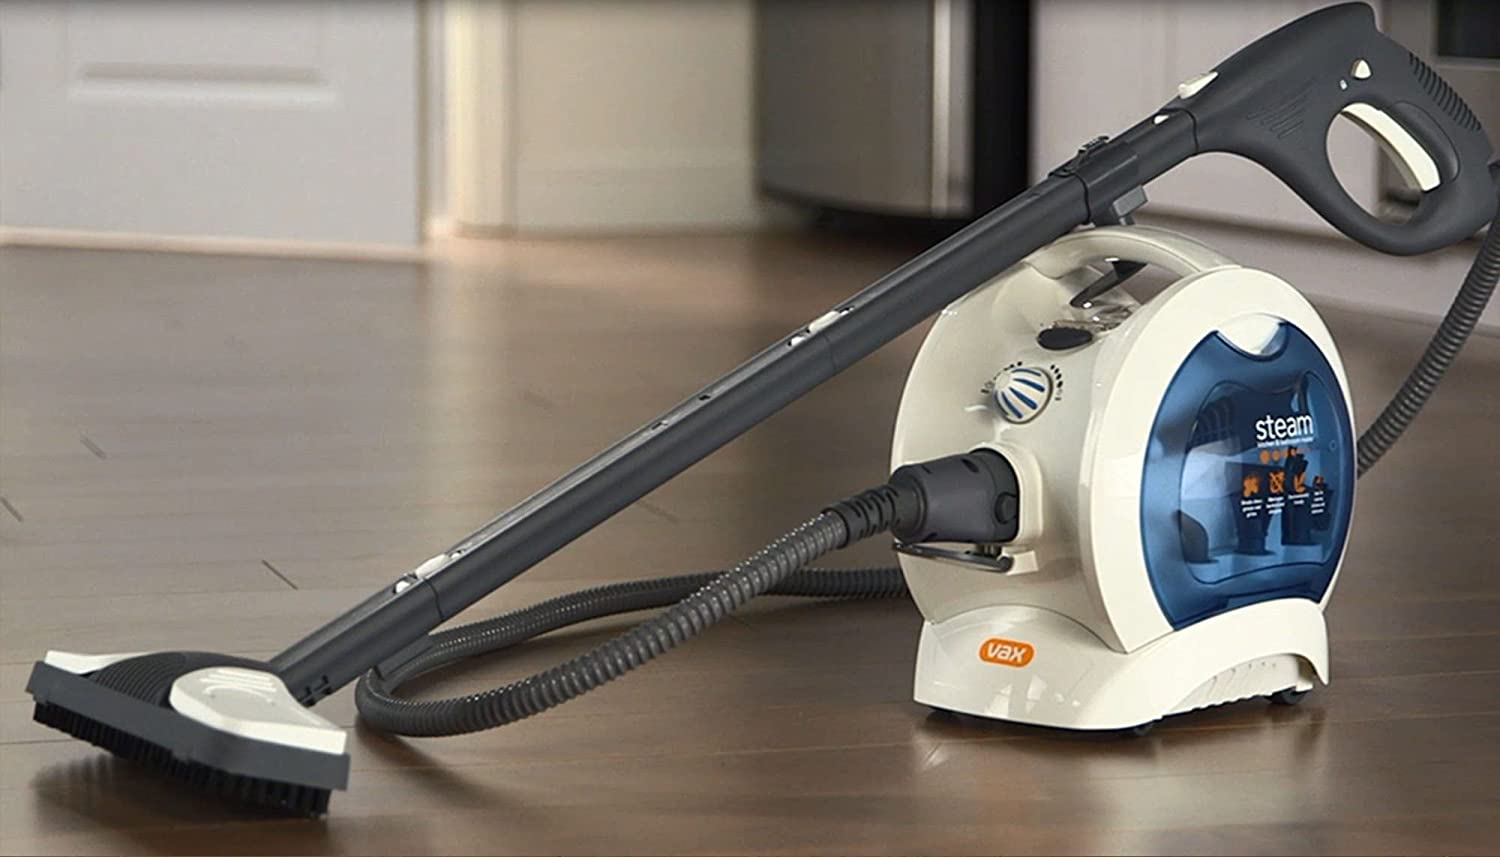 Steam Cleaner For Bathrooms And Kitchens. Amazon Com Vax S5 Kitchen And Bathroom Master Steam Canister By Vax Kitchen Dining